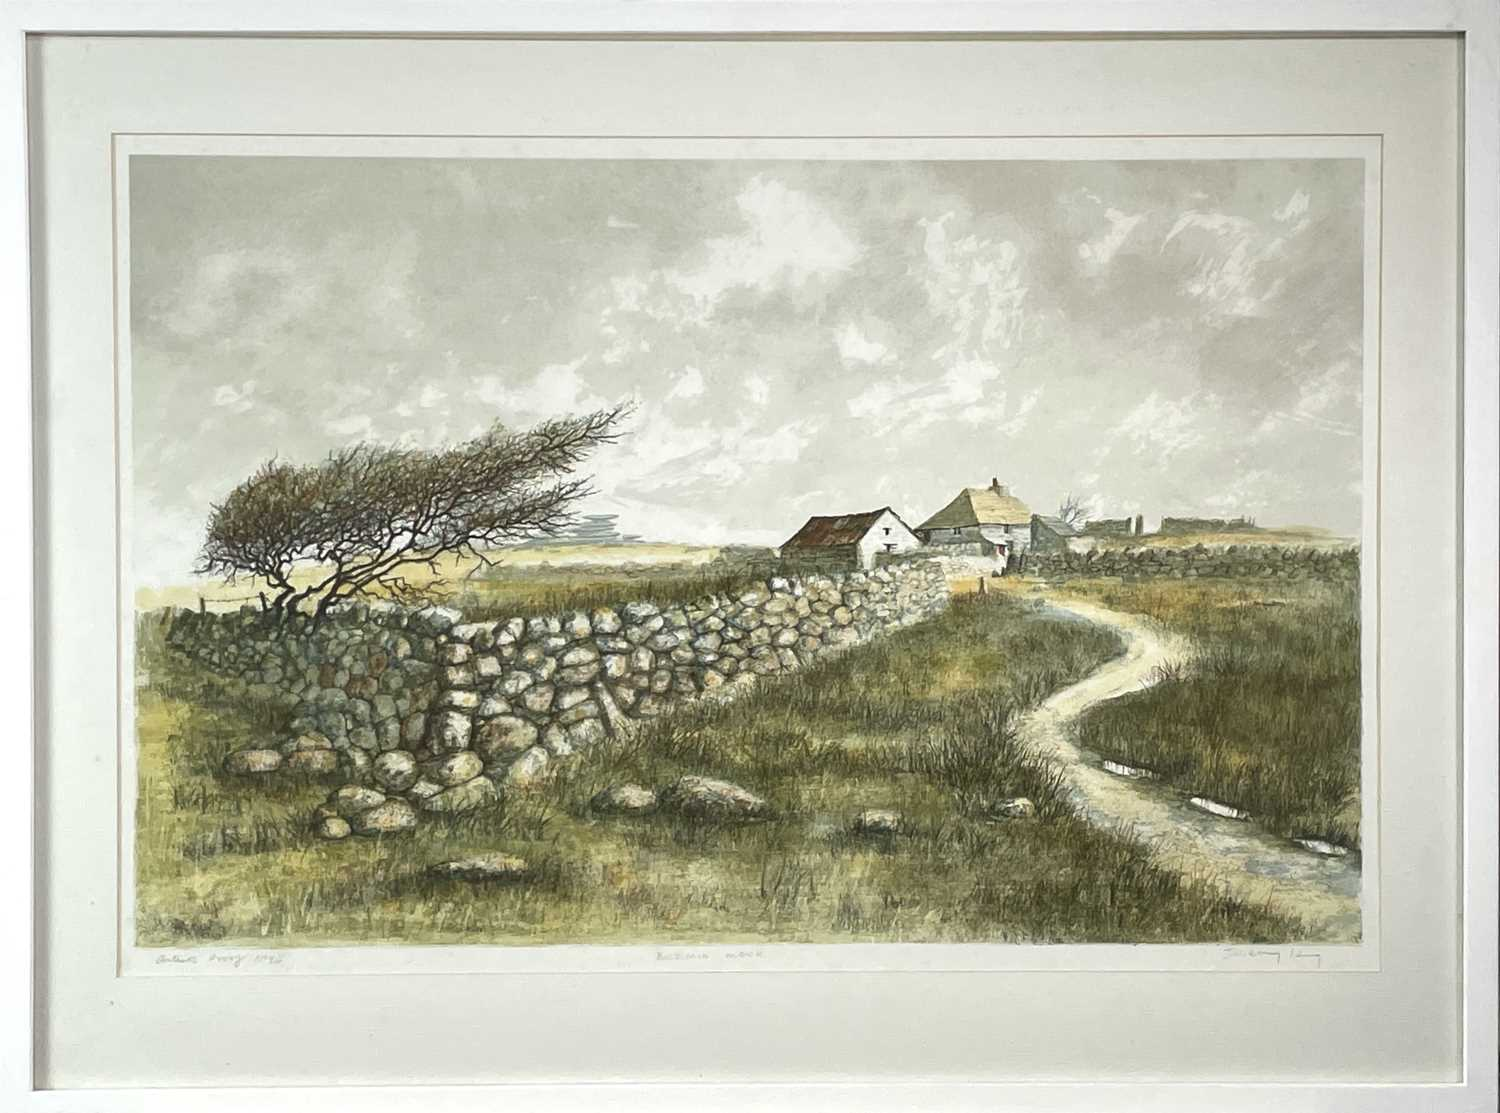 Jeremy KING (1933) Bodmin Moor Lithograph with colours Signed and inscribed, artists proof 24/25 - Image 3 of 3